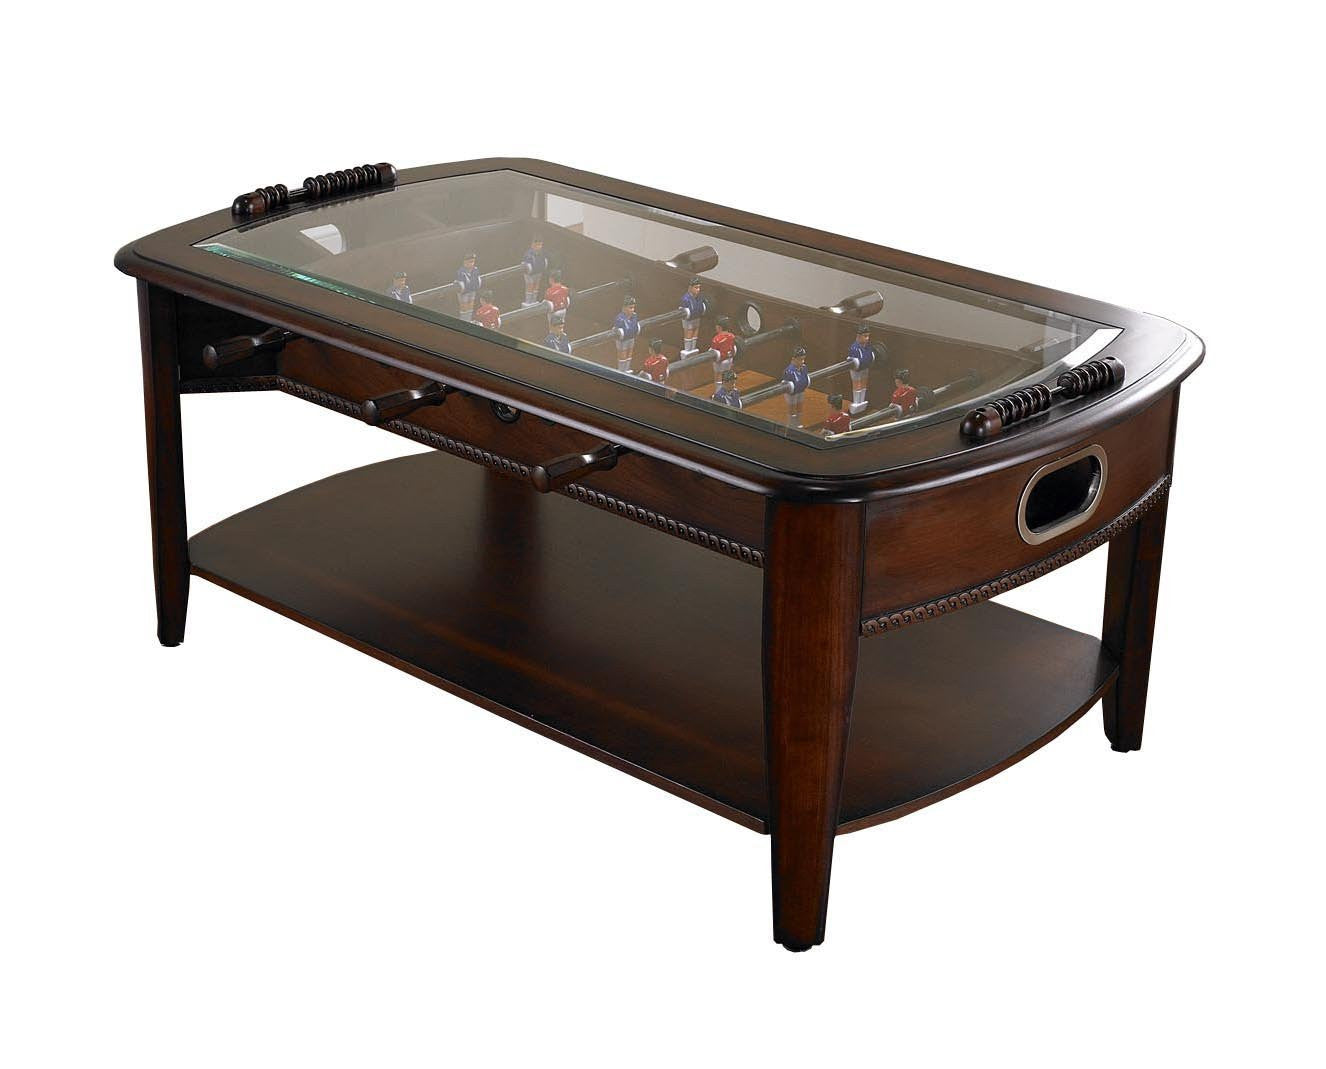 Superieur Chicago Gaming Company Signature Foosball Coffee Table ...